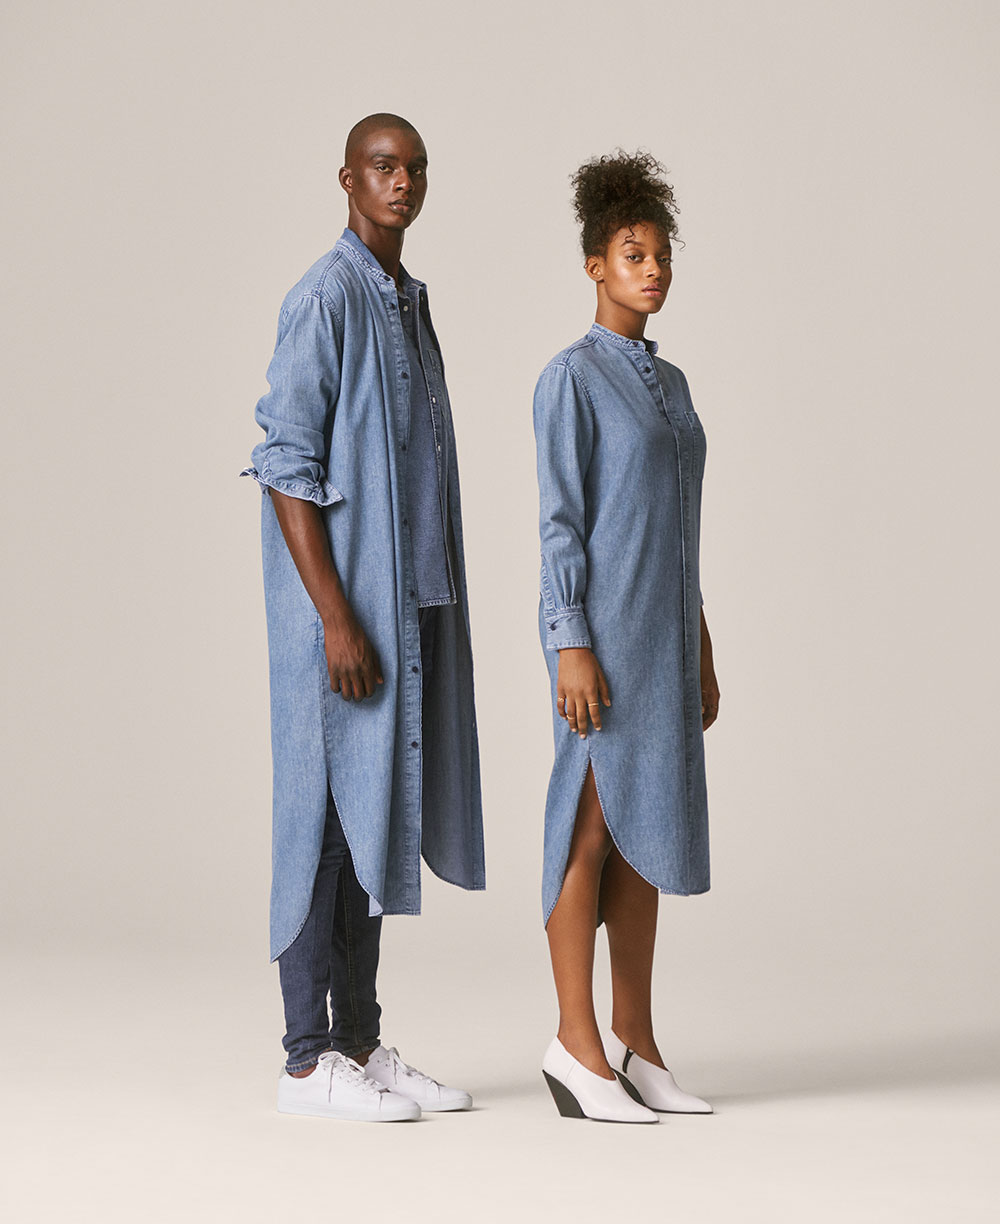 h&m denim dress.jpg